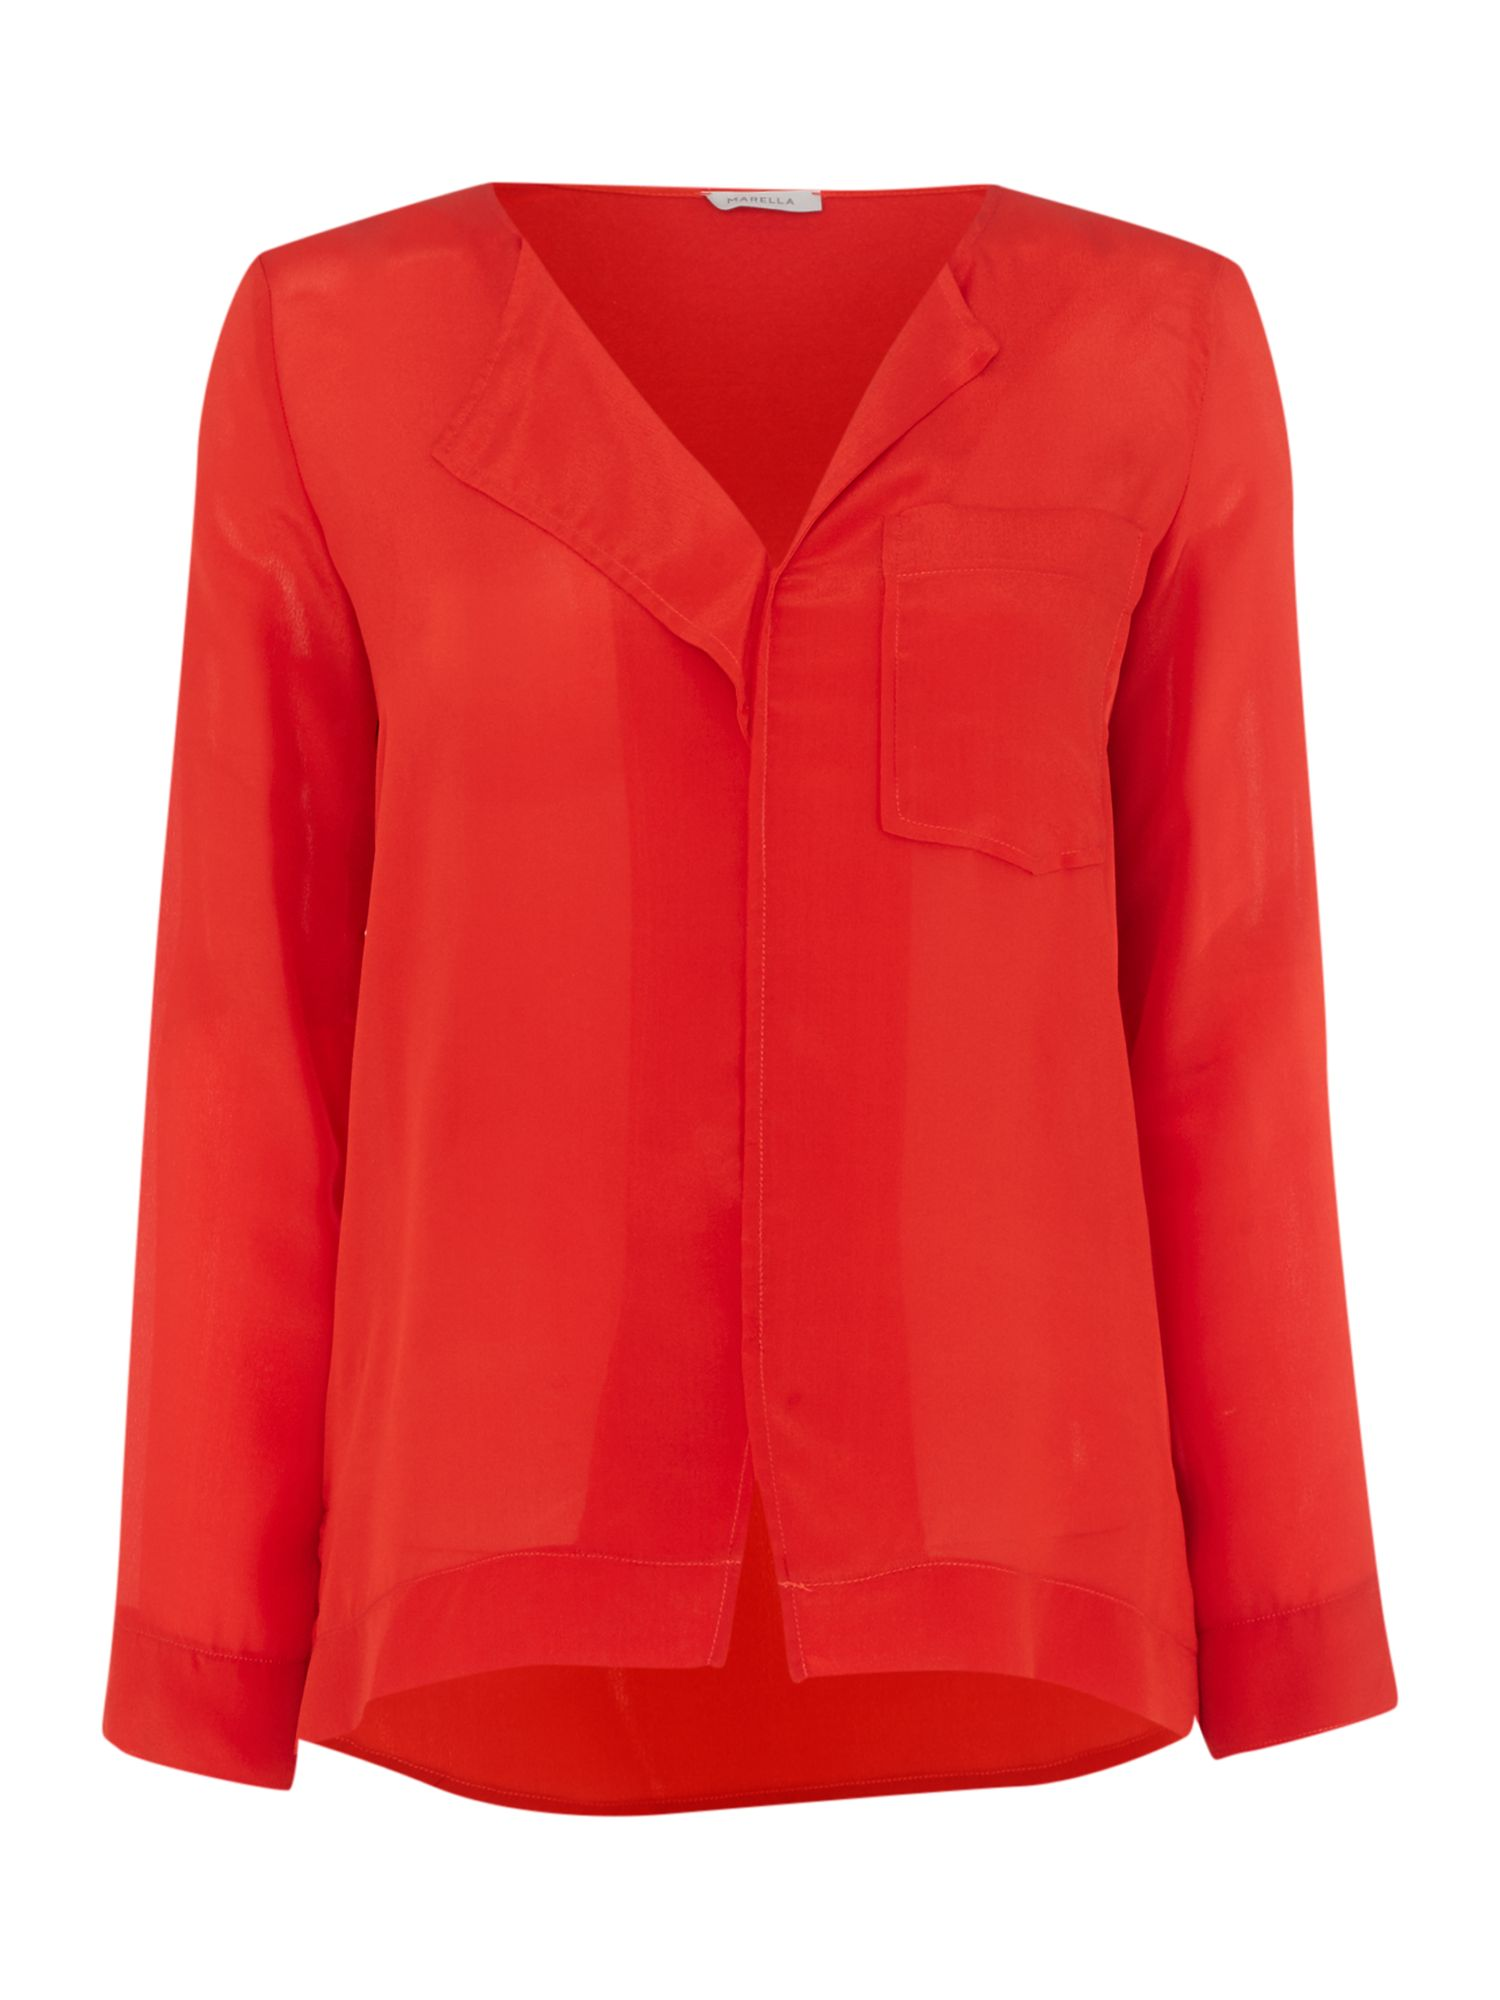 Marella LAGUNA longsleeve dropped hem blouse, Red